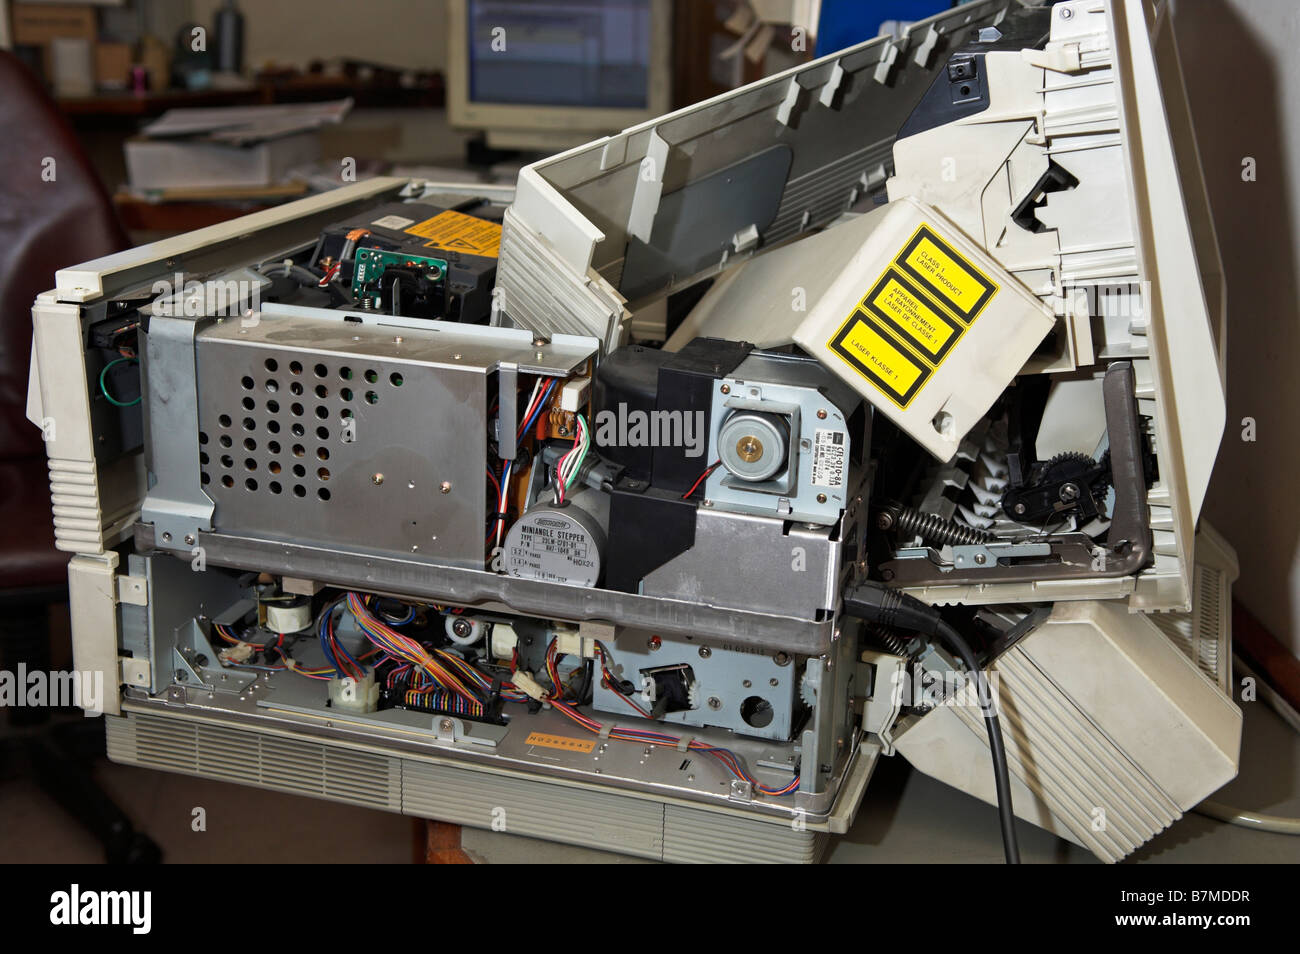 Electronic Scrap Stock Photos Images Alamy Circuit Board Recycling Machine Computer Broken Laser Printer In Office Now Electrical For Image